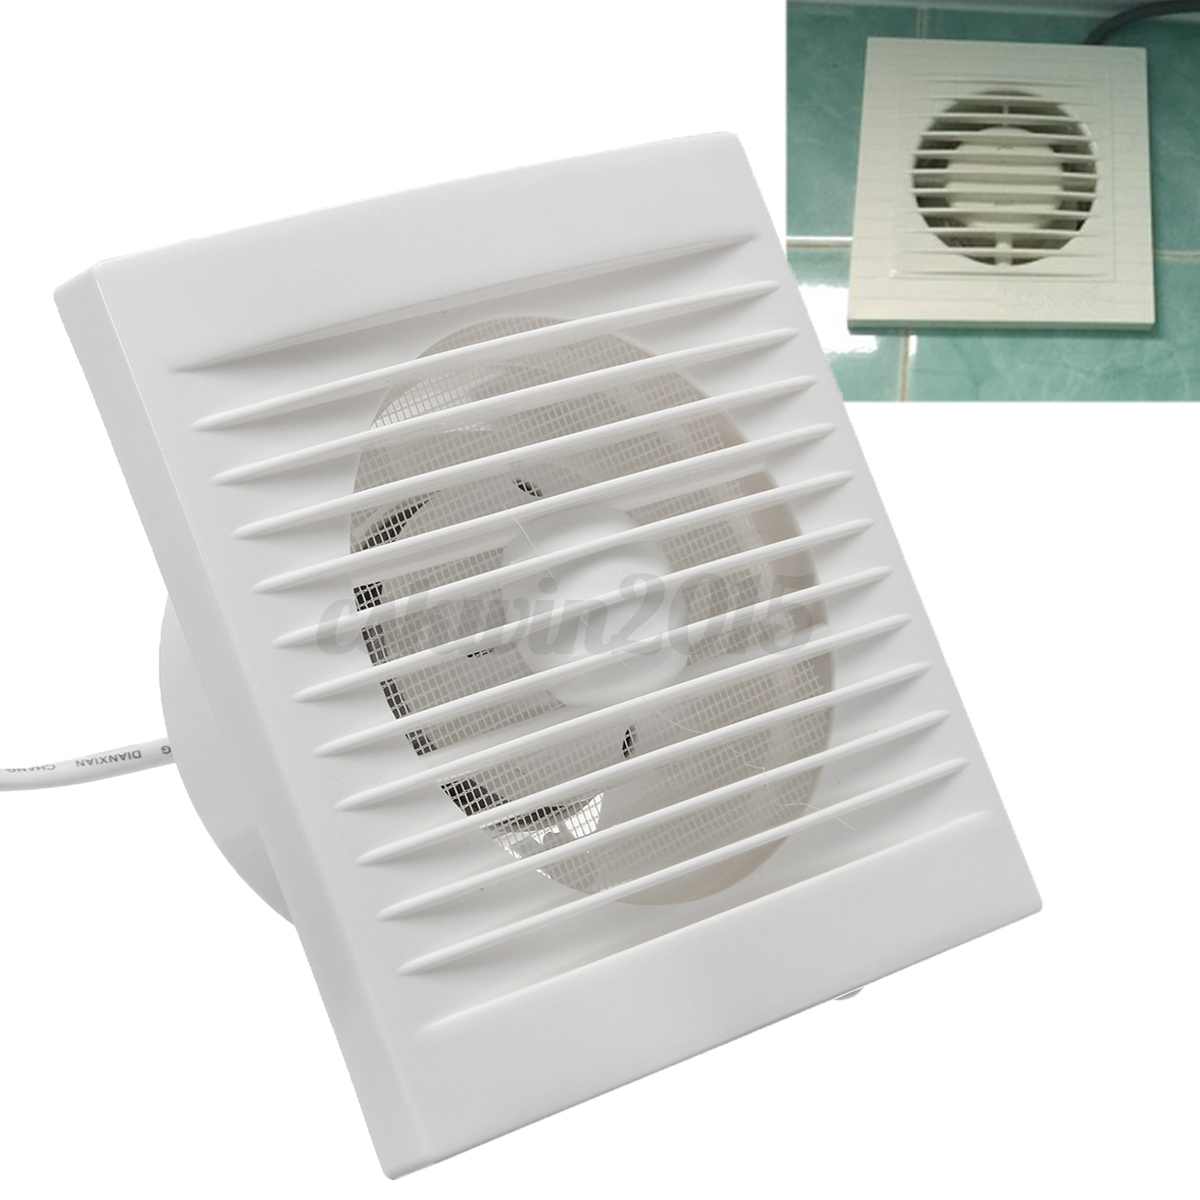 4 220v 12w exhaust fans ventilator extractor blower for 4 kitchen exhaust fan